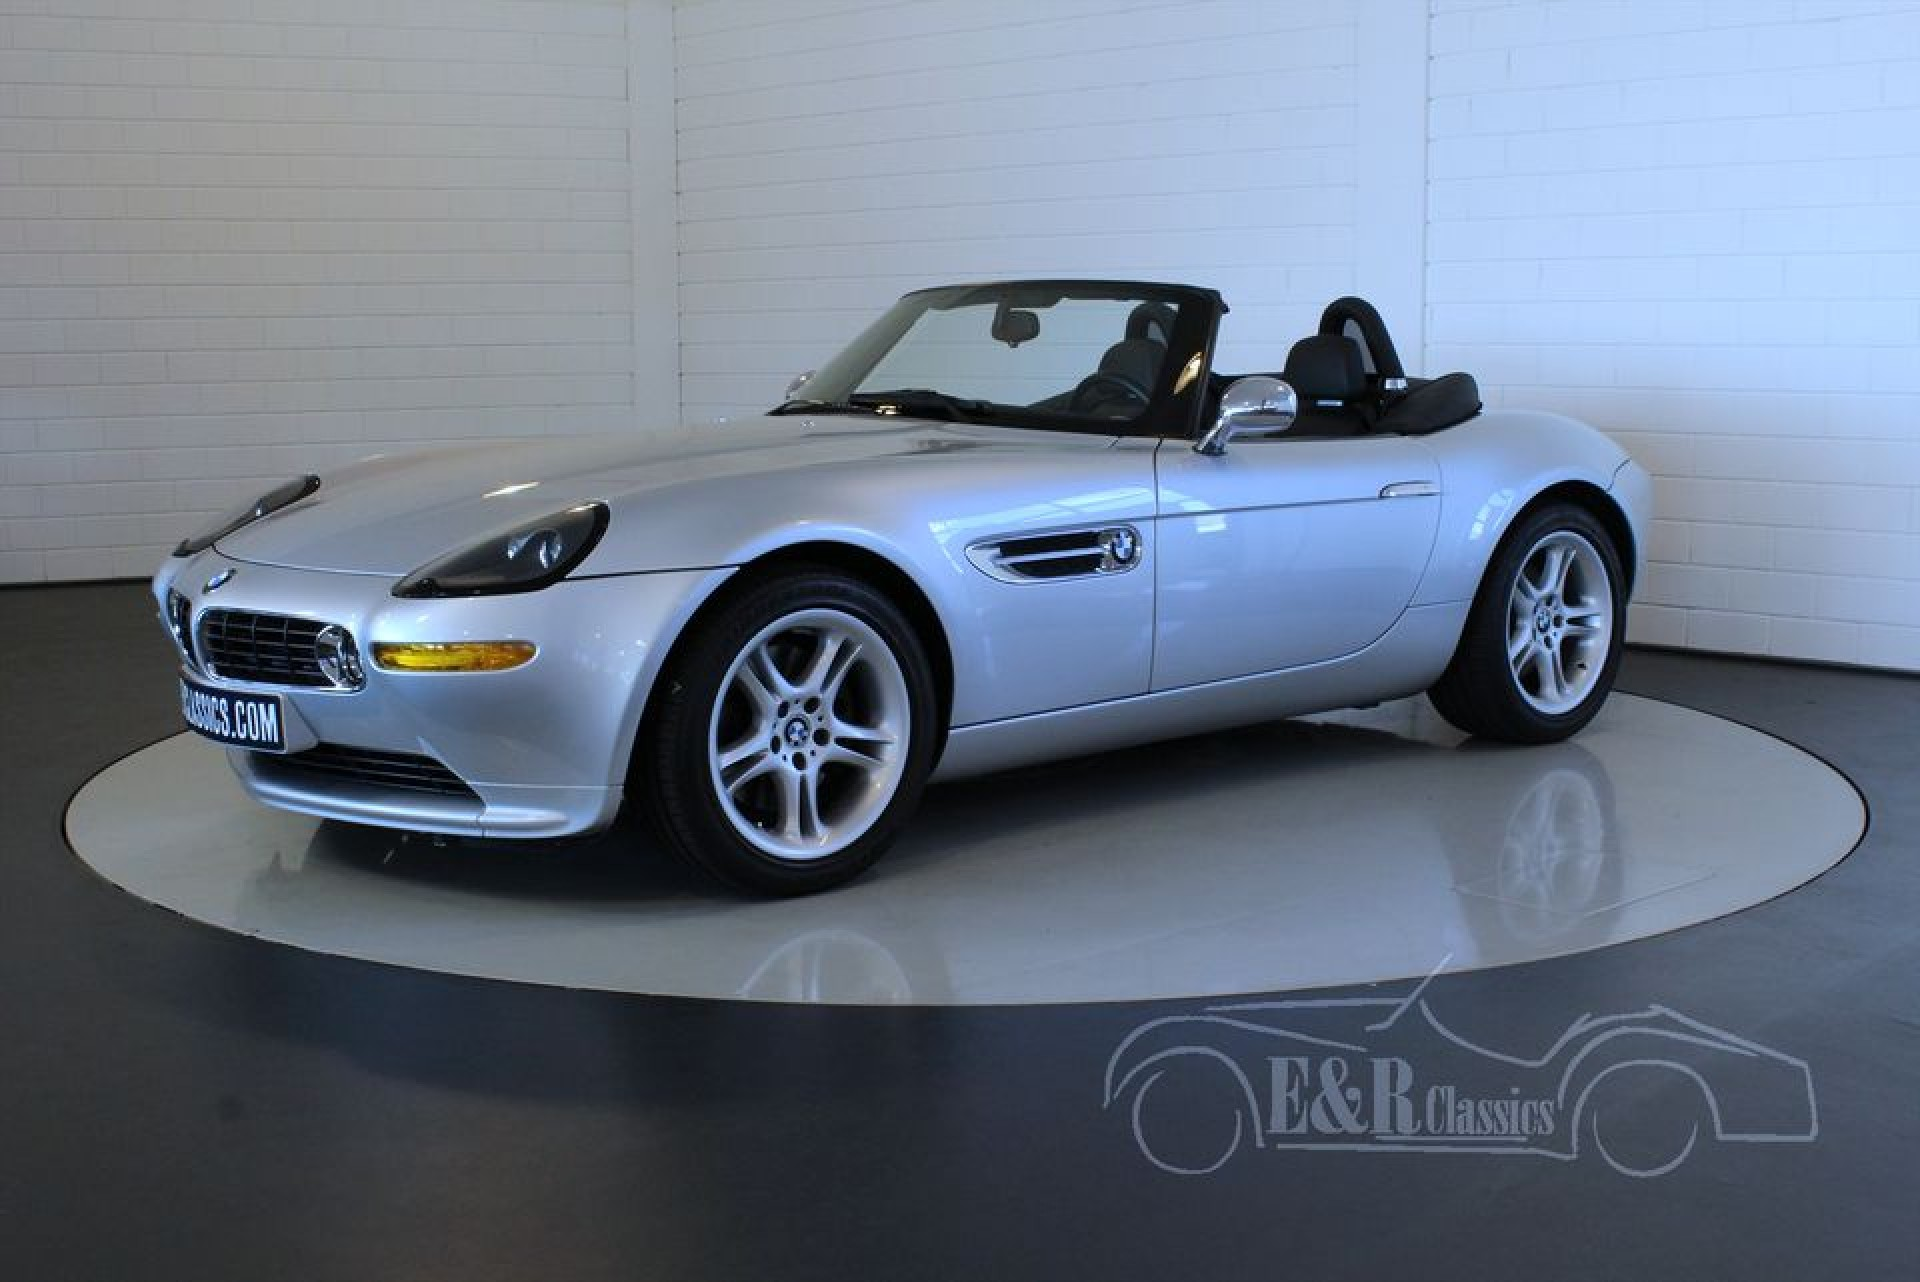 Bmw Z8 Cabriolet 2003 For Sale At Erclassics